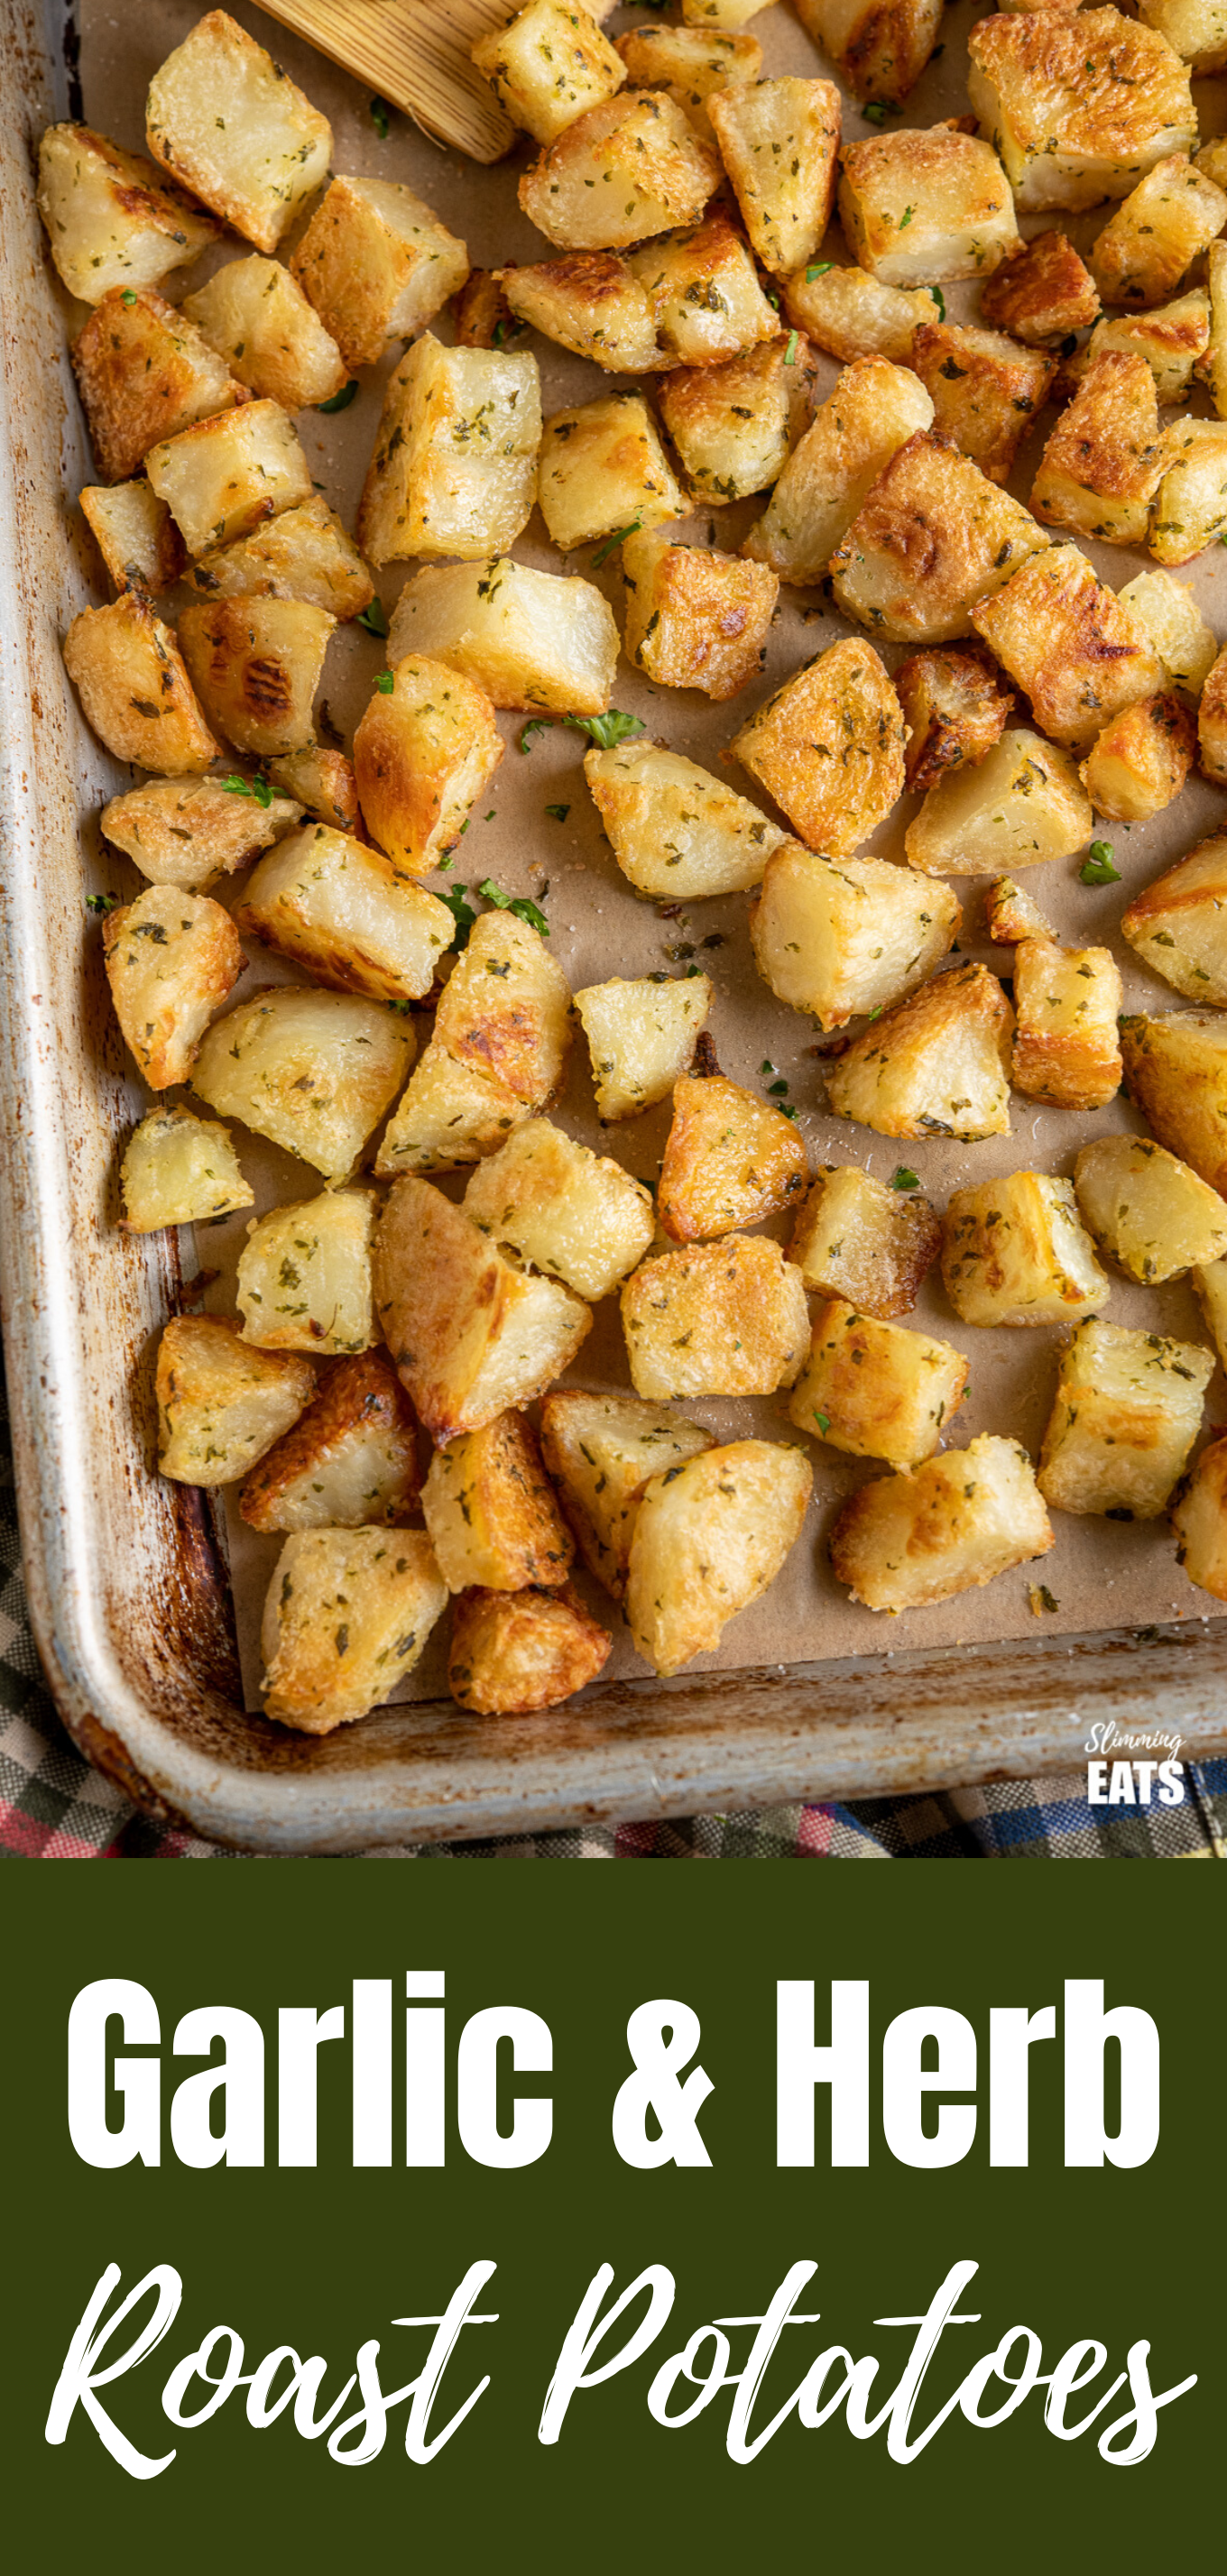 garlic and herb and roast potatoes featured pin